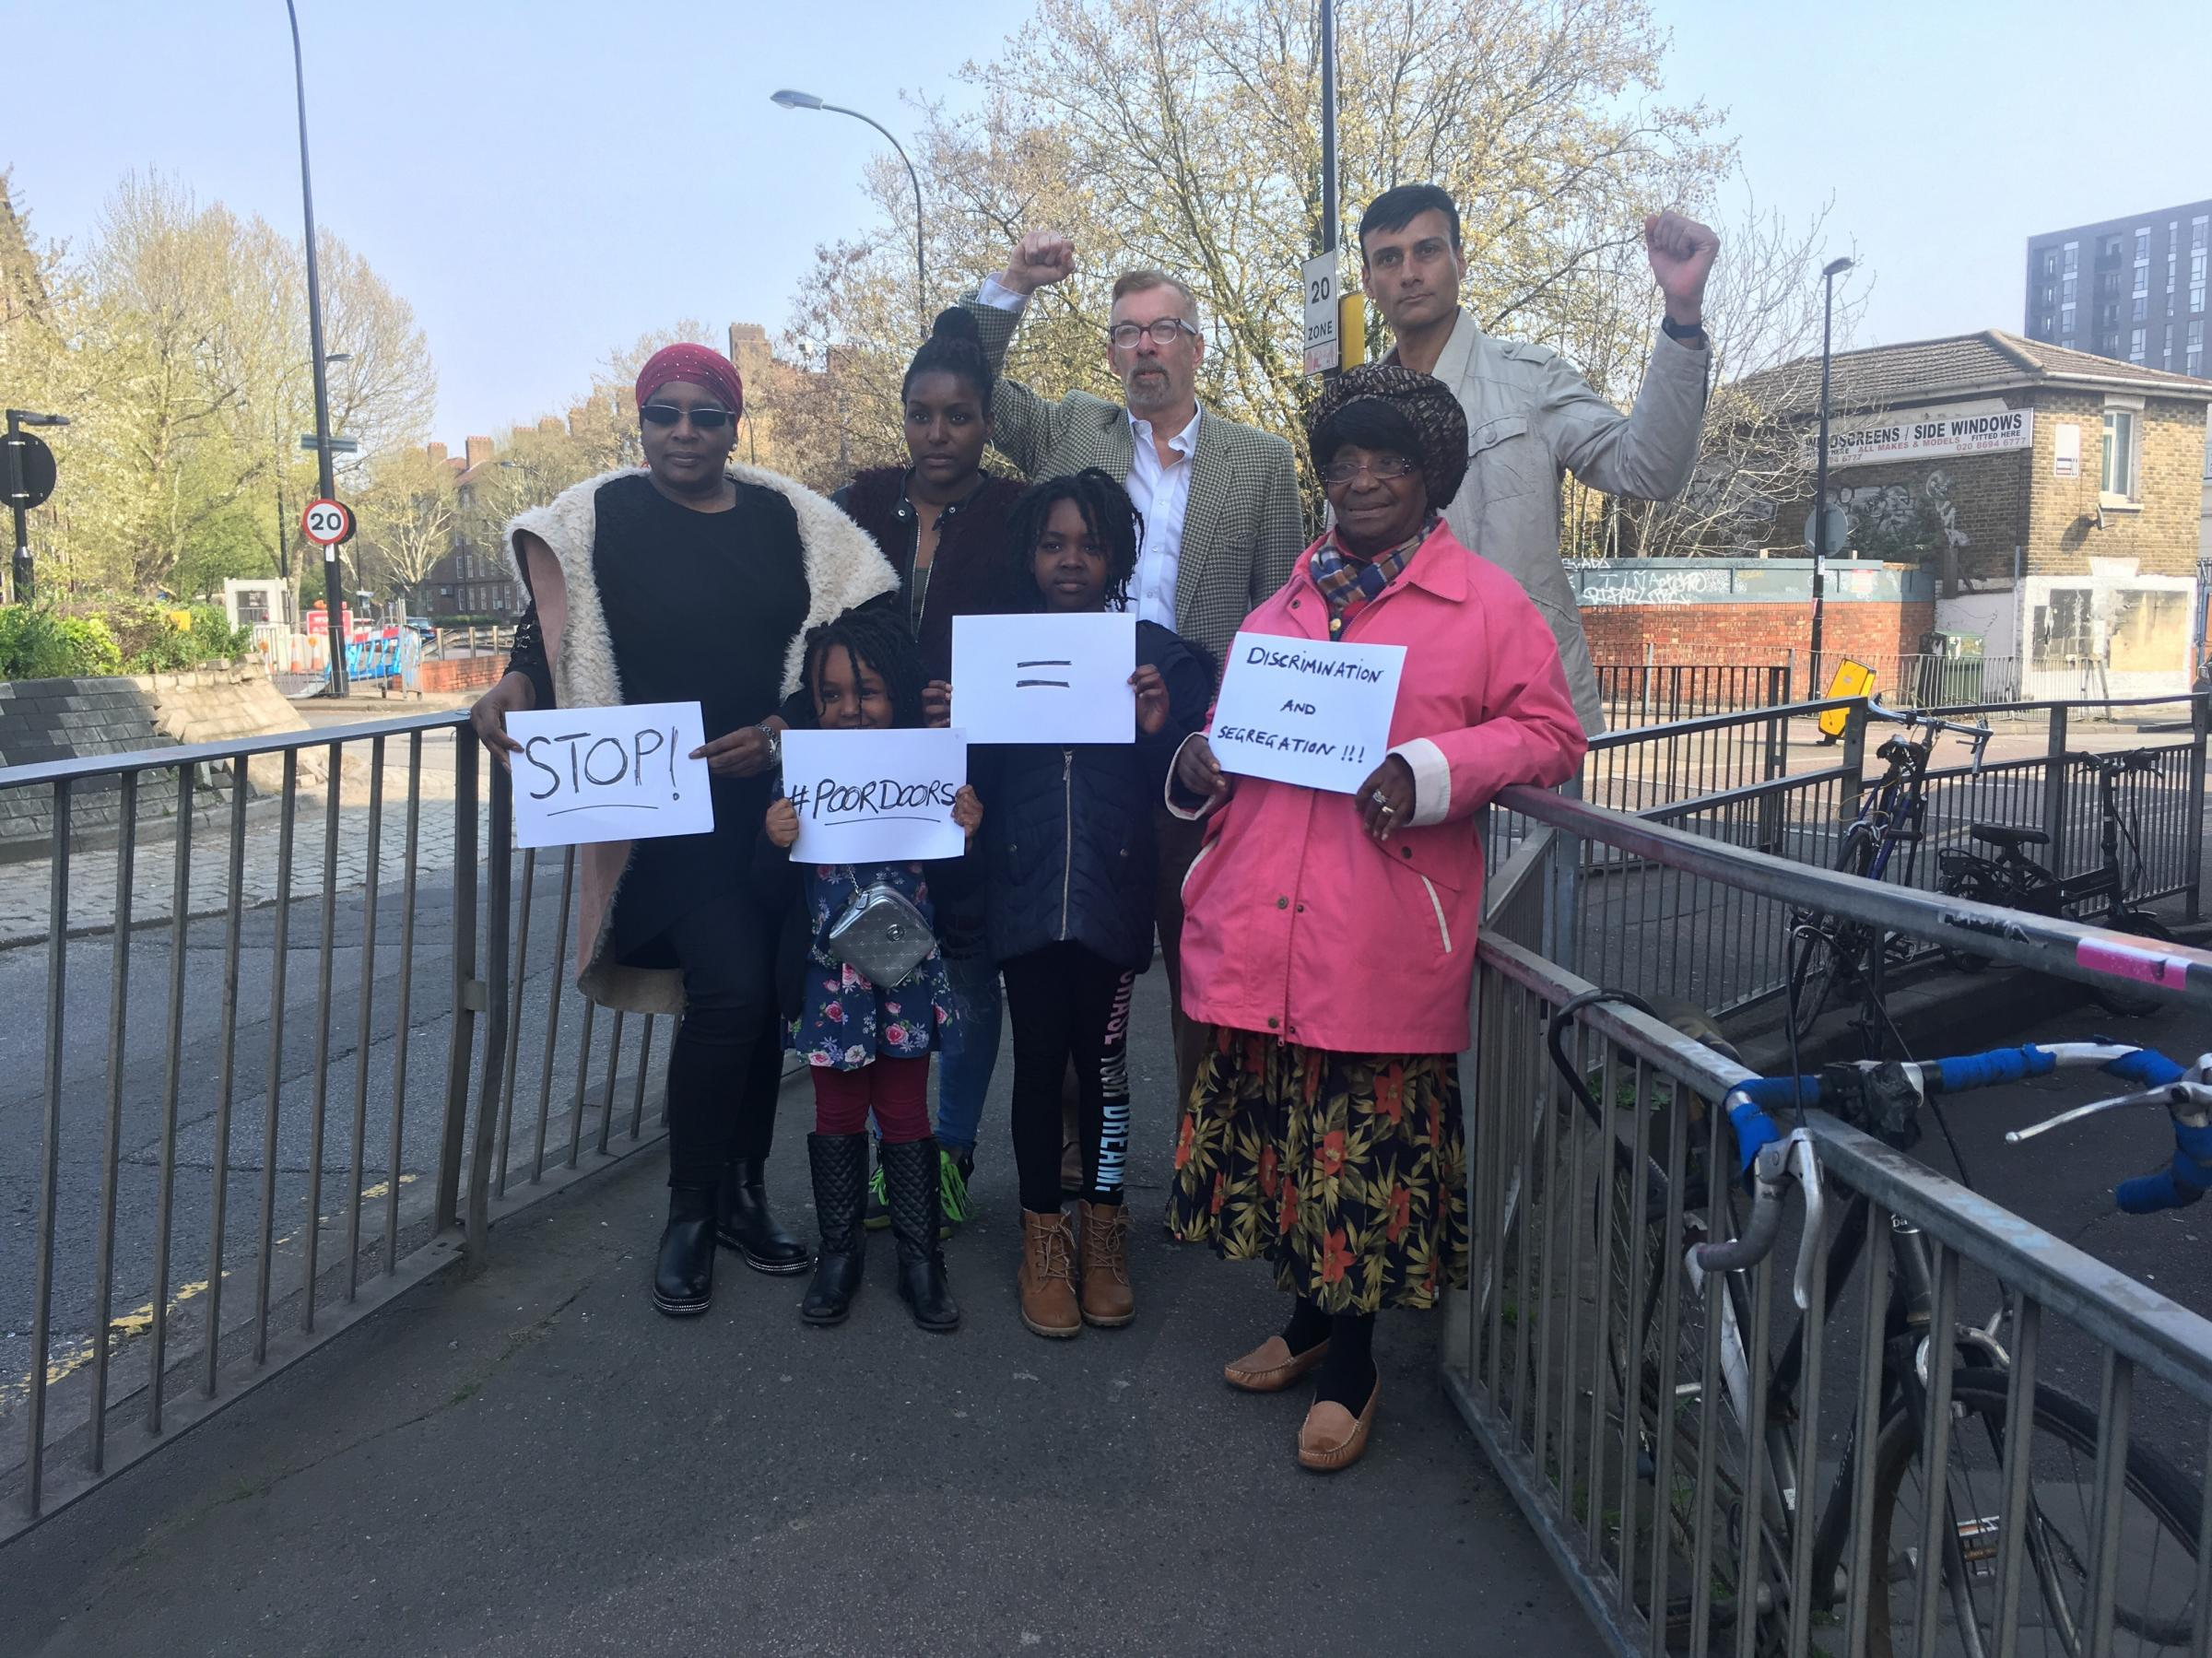 The campaigners have called on the council to stop 'segregated' developments in Lewisham